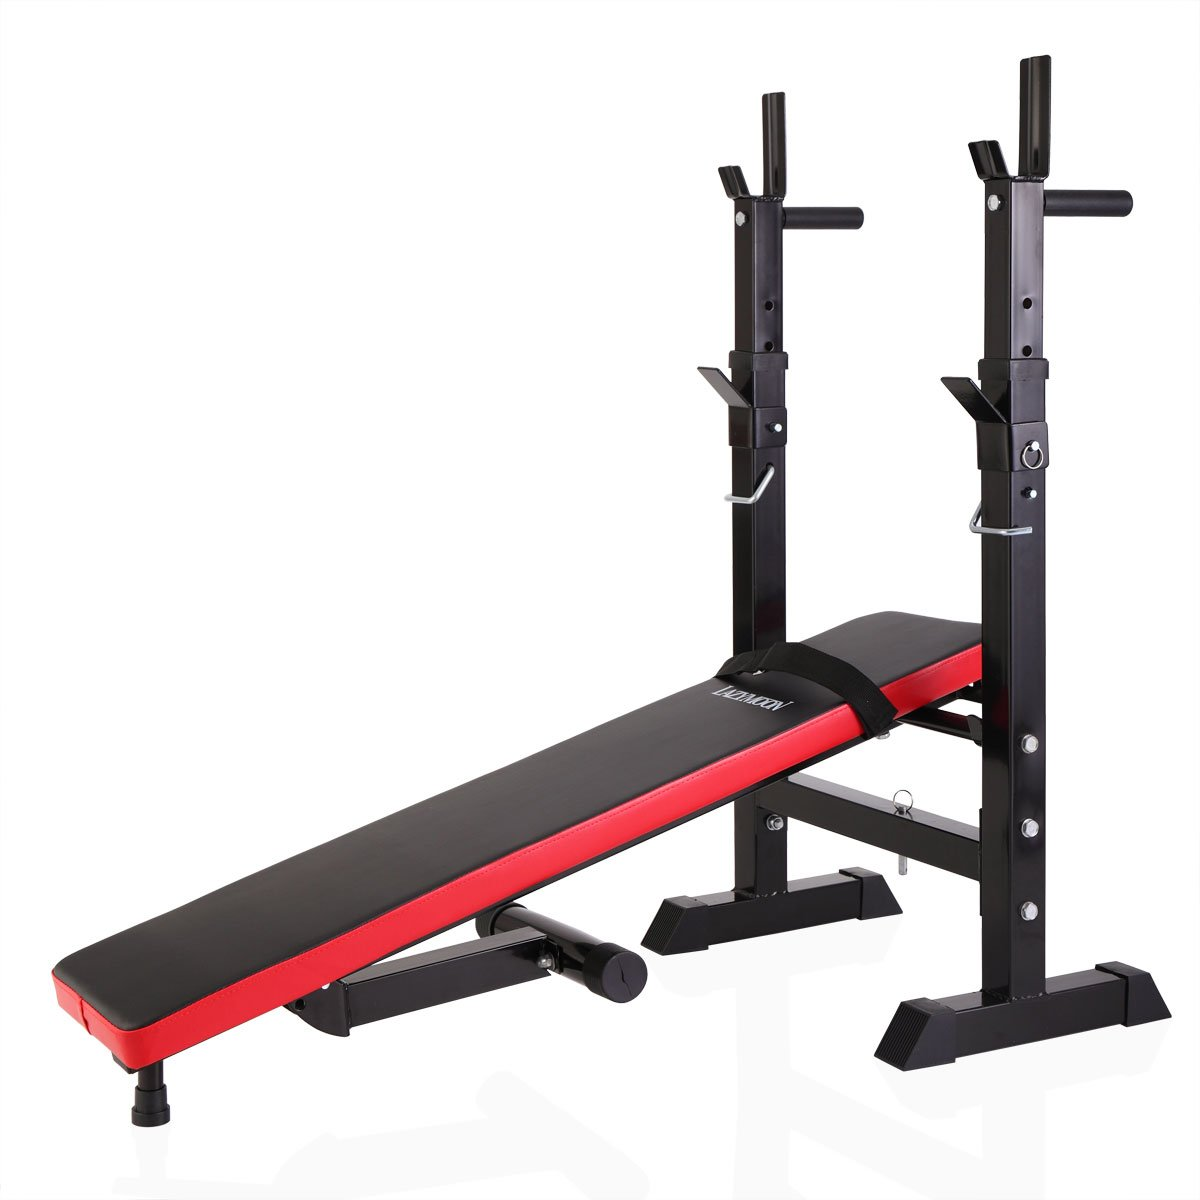 Tobbi Adjustable Folding Weight Lifting Bench for Full-Body Workout